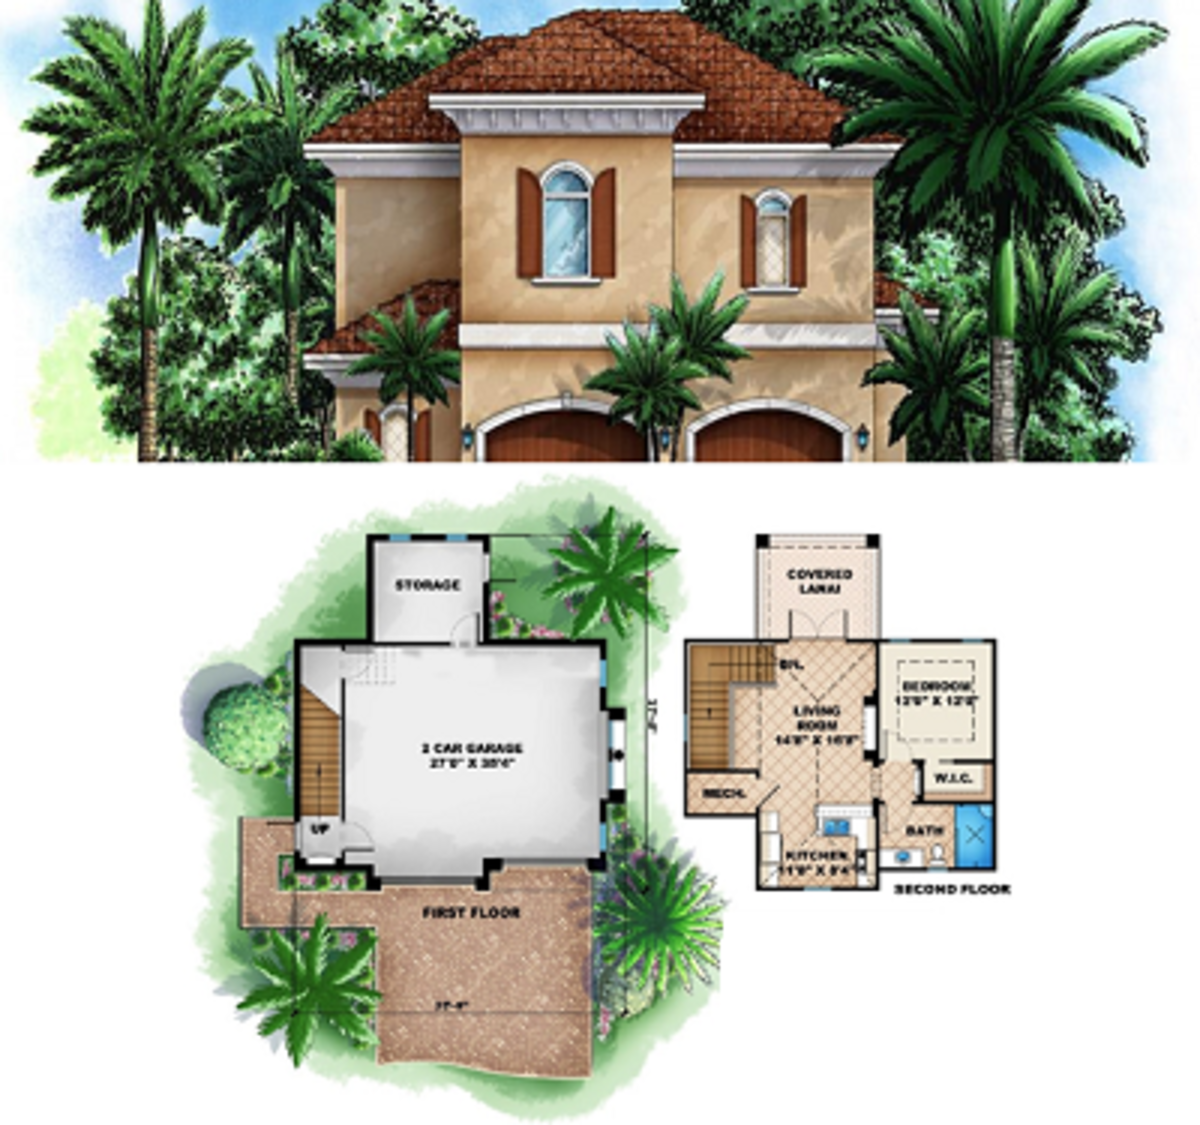 A compact traditional style home design that's a great size for down-sized living and a perfect design for a mother-in-law's home.